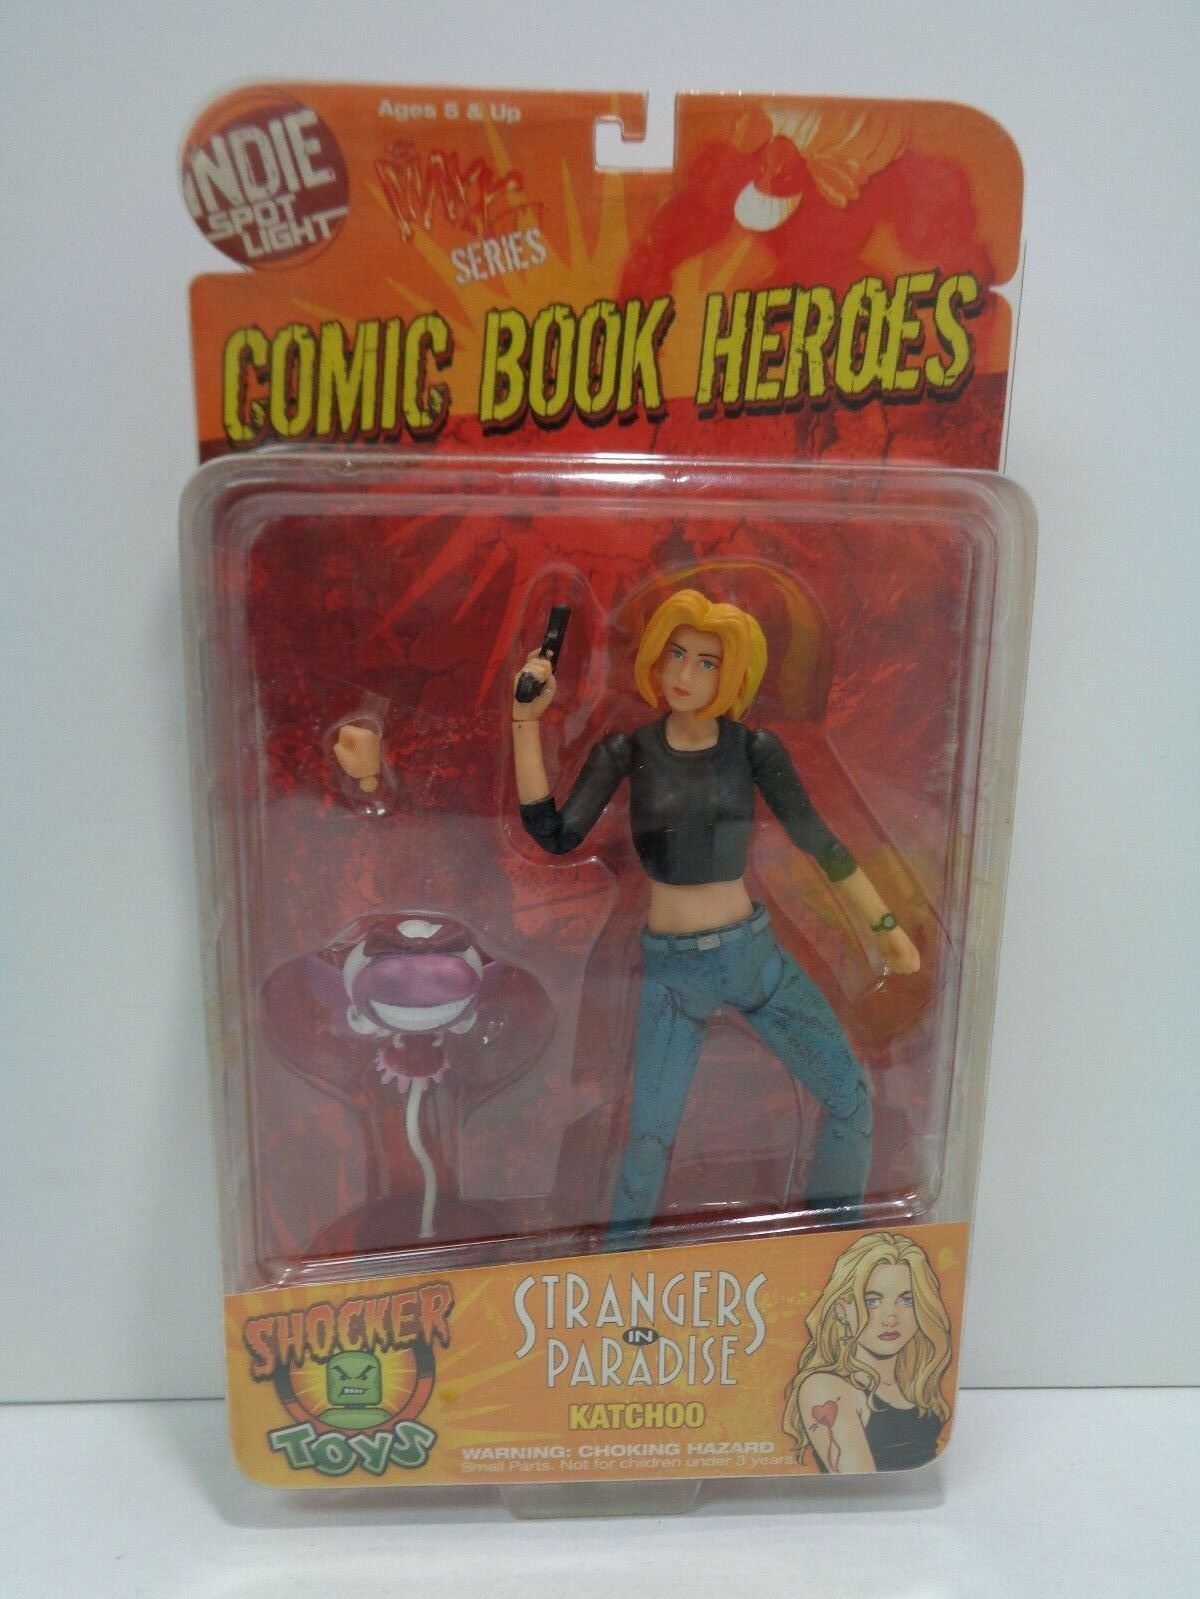 STRANGERS IN PARADISE Comic Book Heroes KATCHOO Shocker Toys 2009 MOC